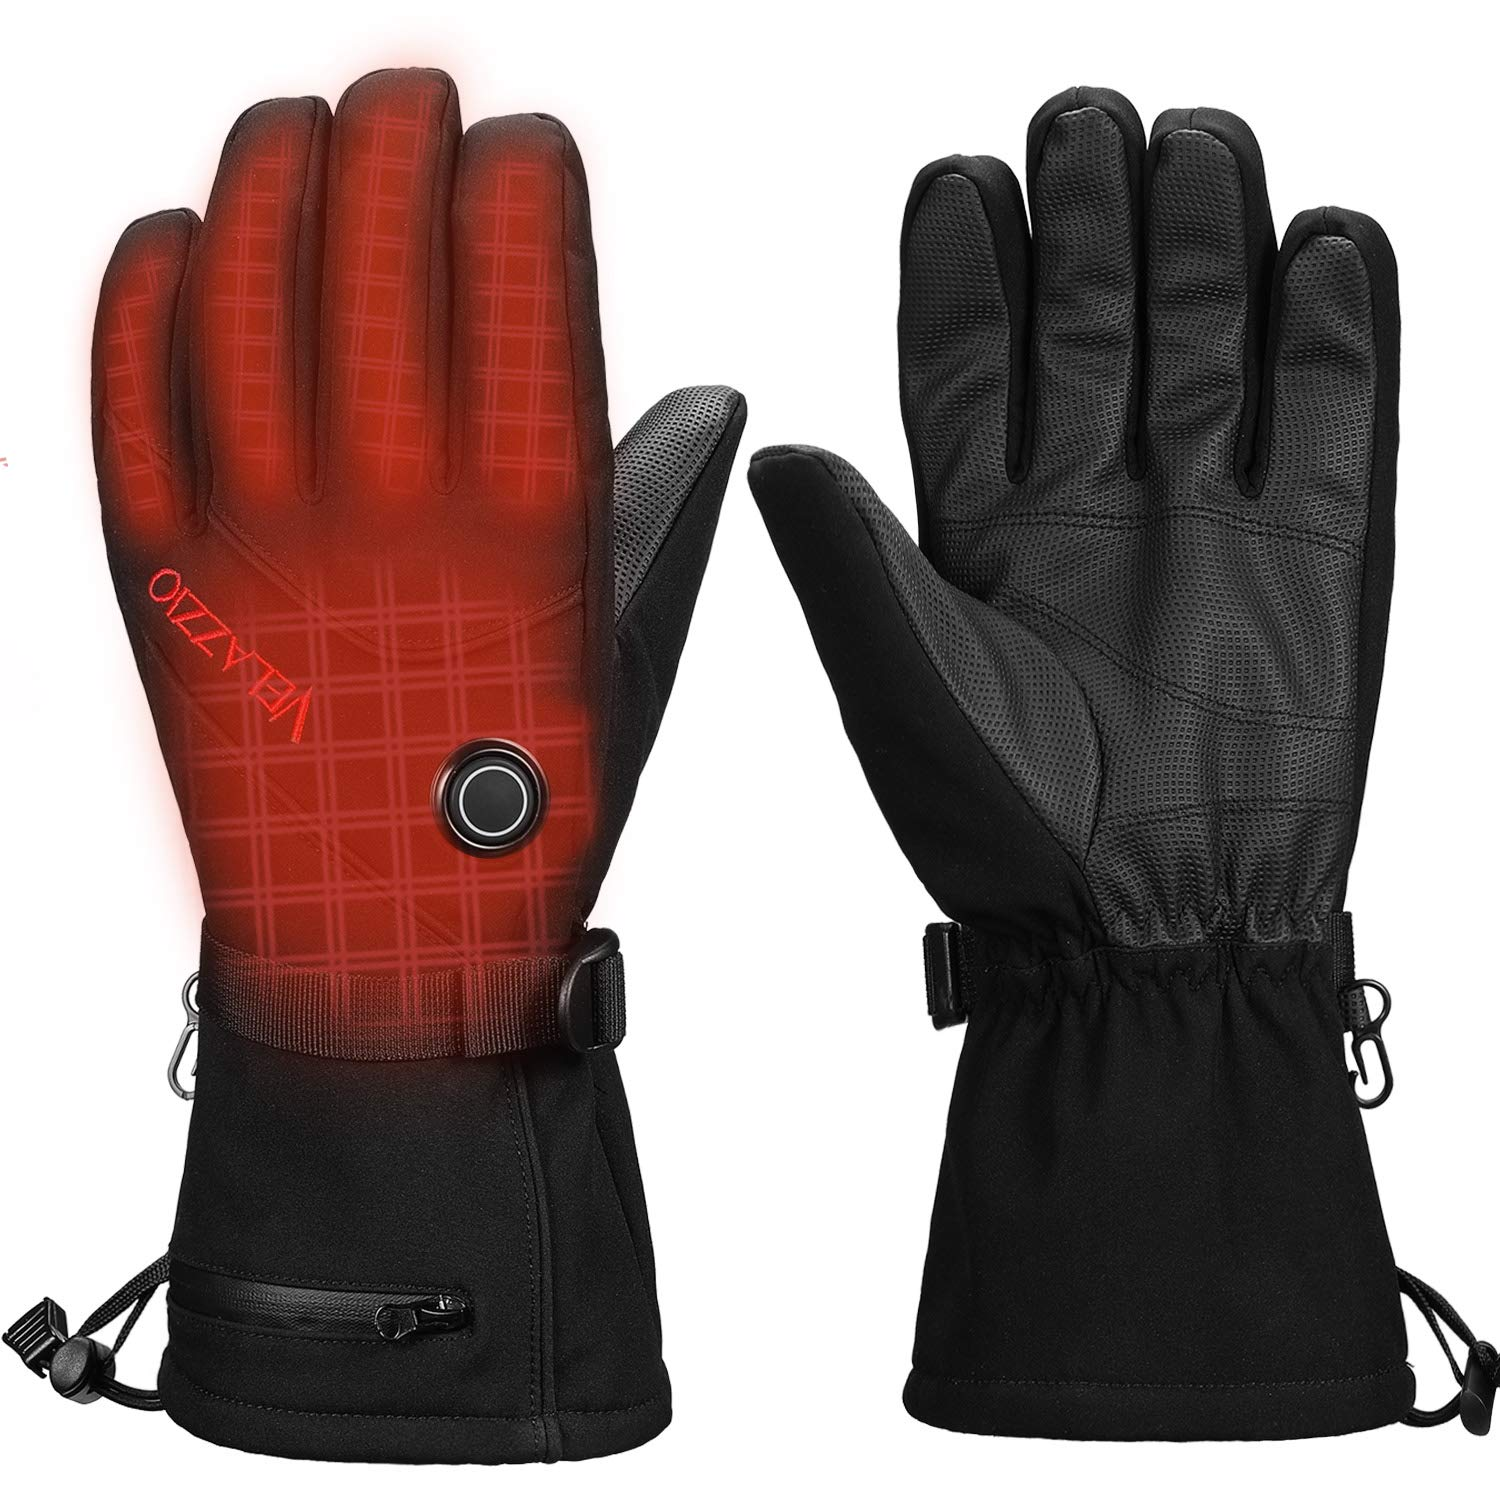 VELAZZIO Thermo1 Battery Heated Gloves - Size M by VELAZZIO